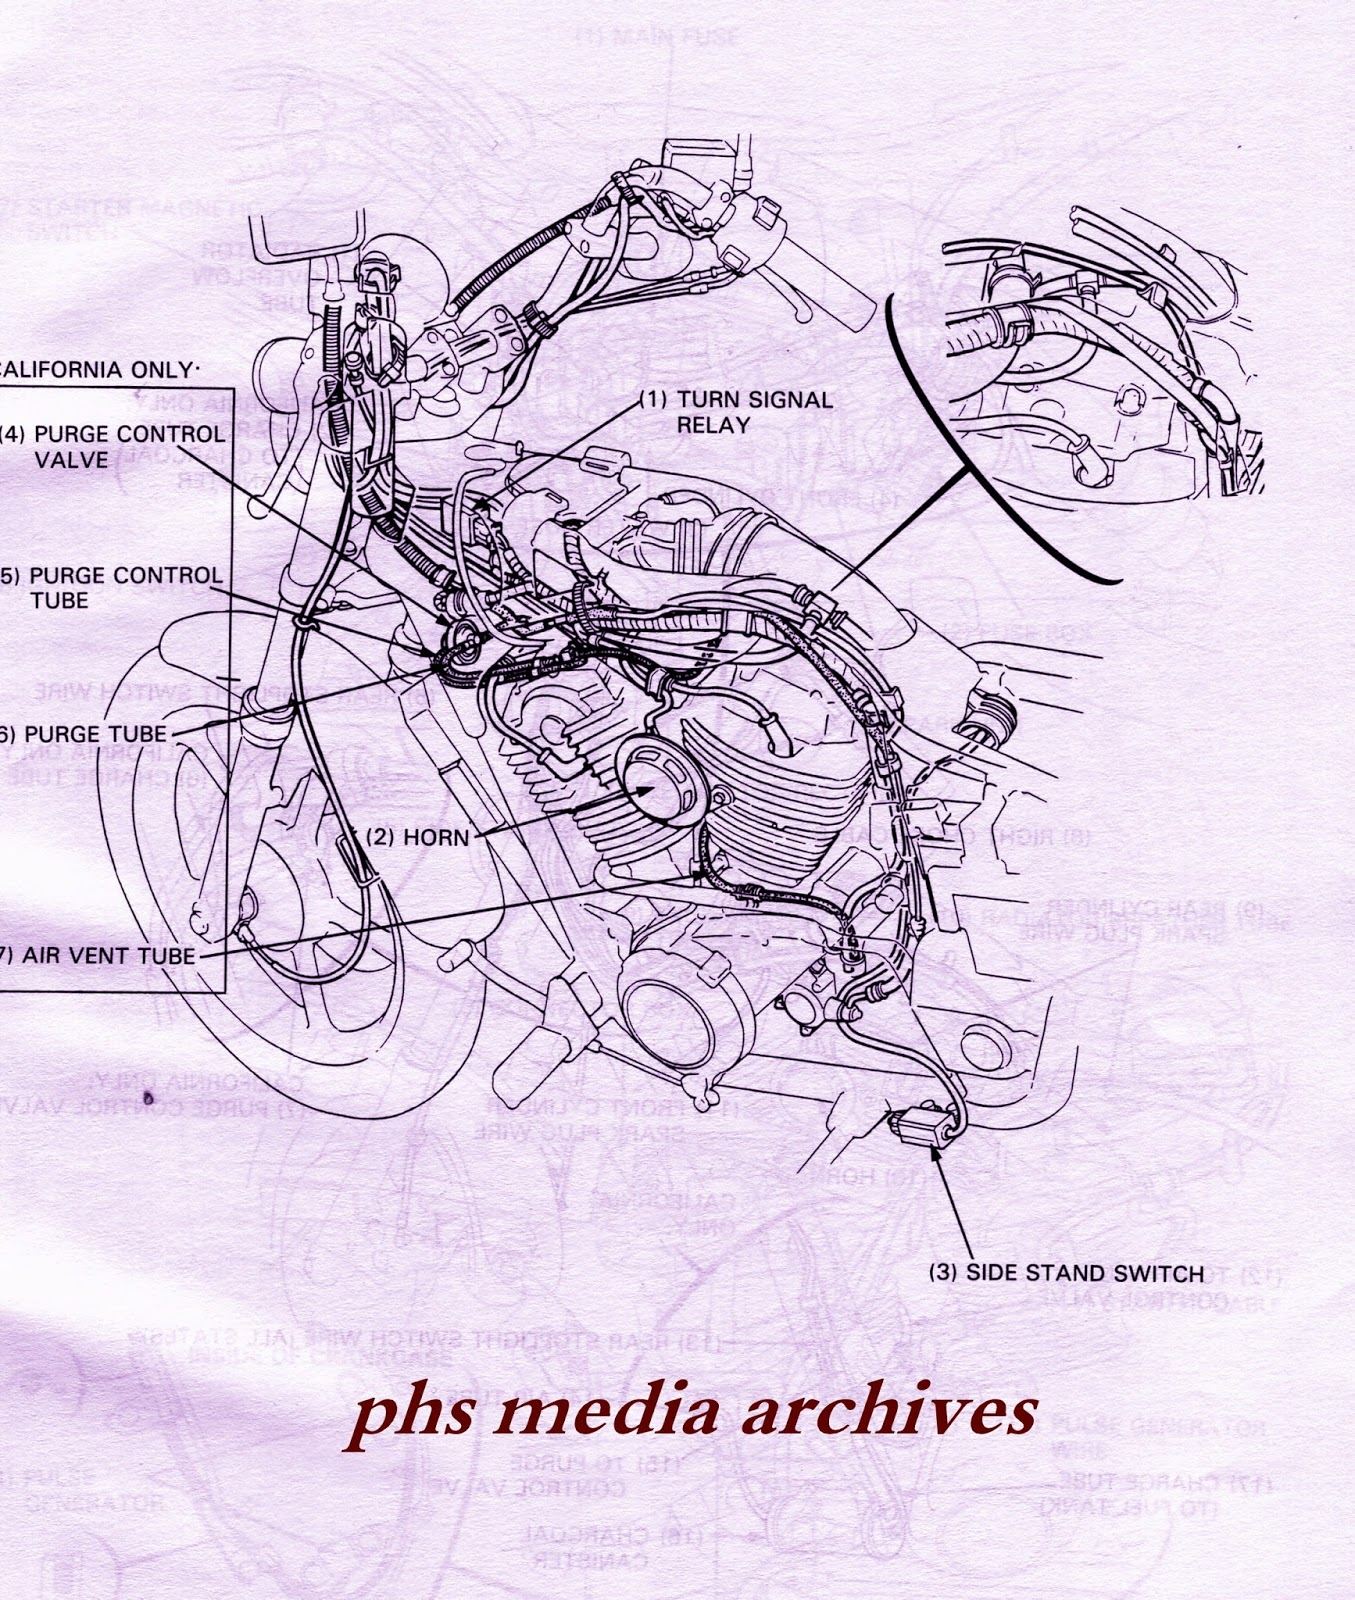 Diagram Of Honda Motorcycle Parts 2003 Vf750c Ac Wire Harness Diagram